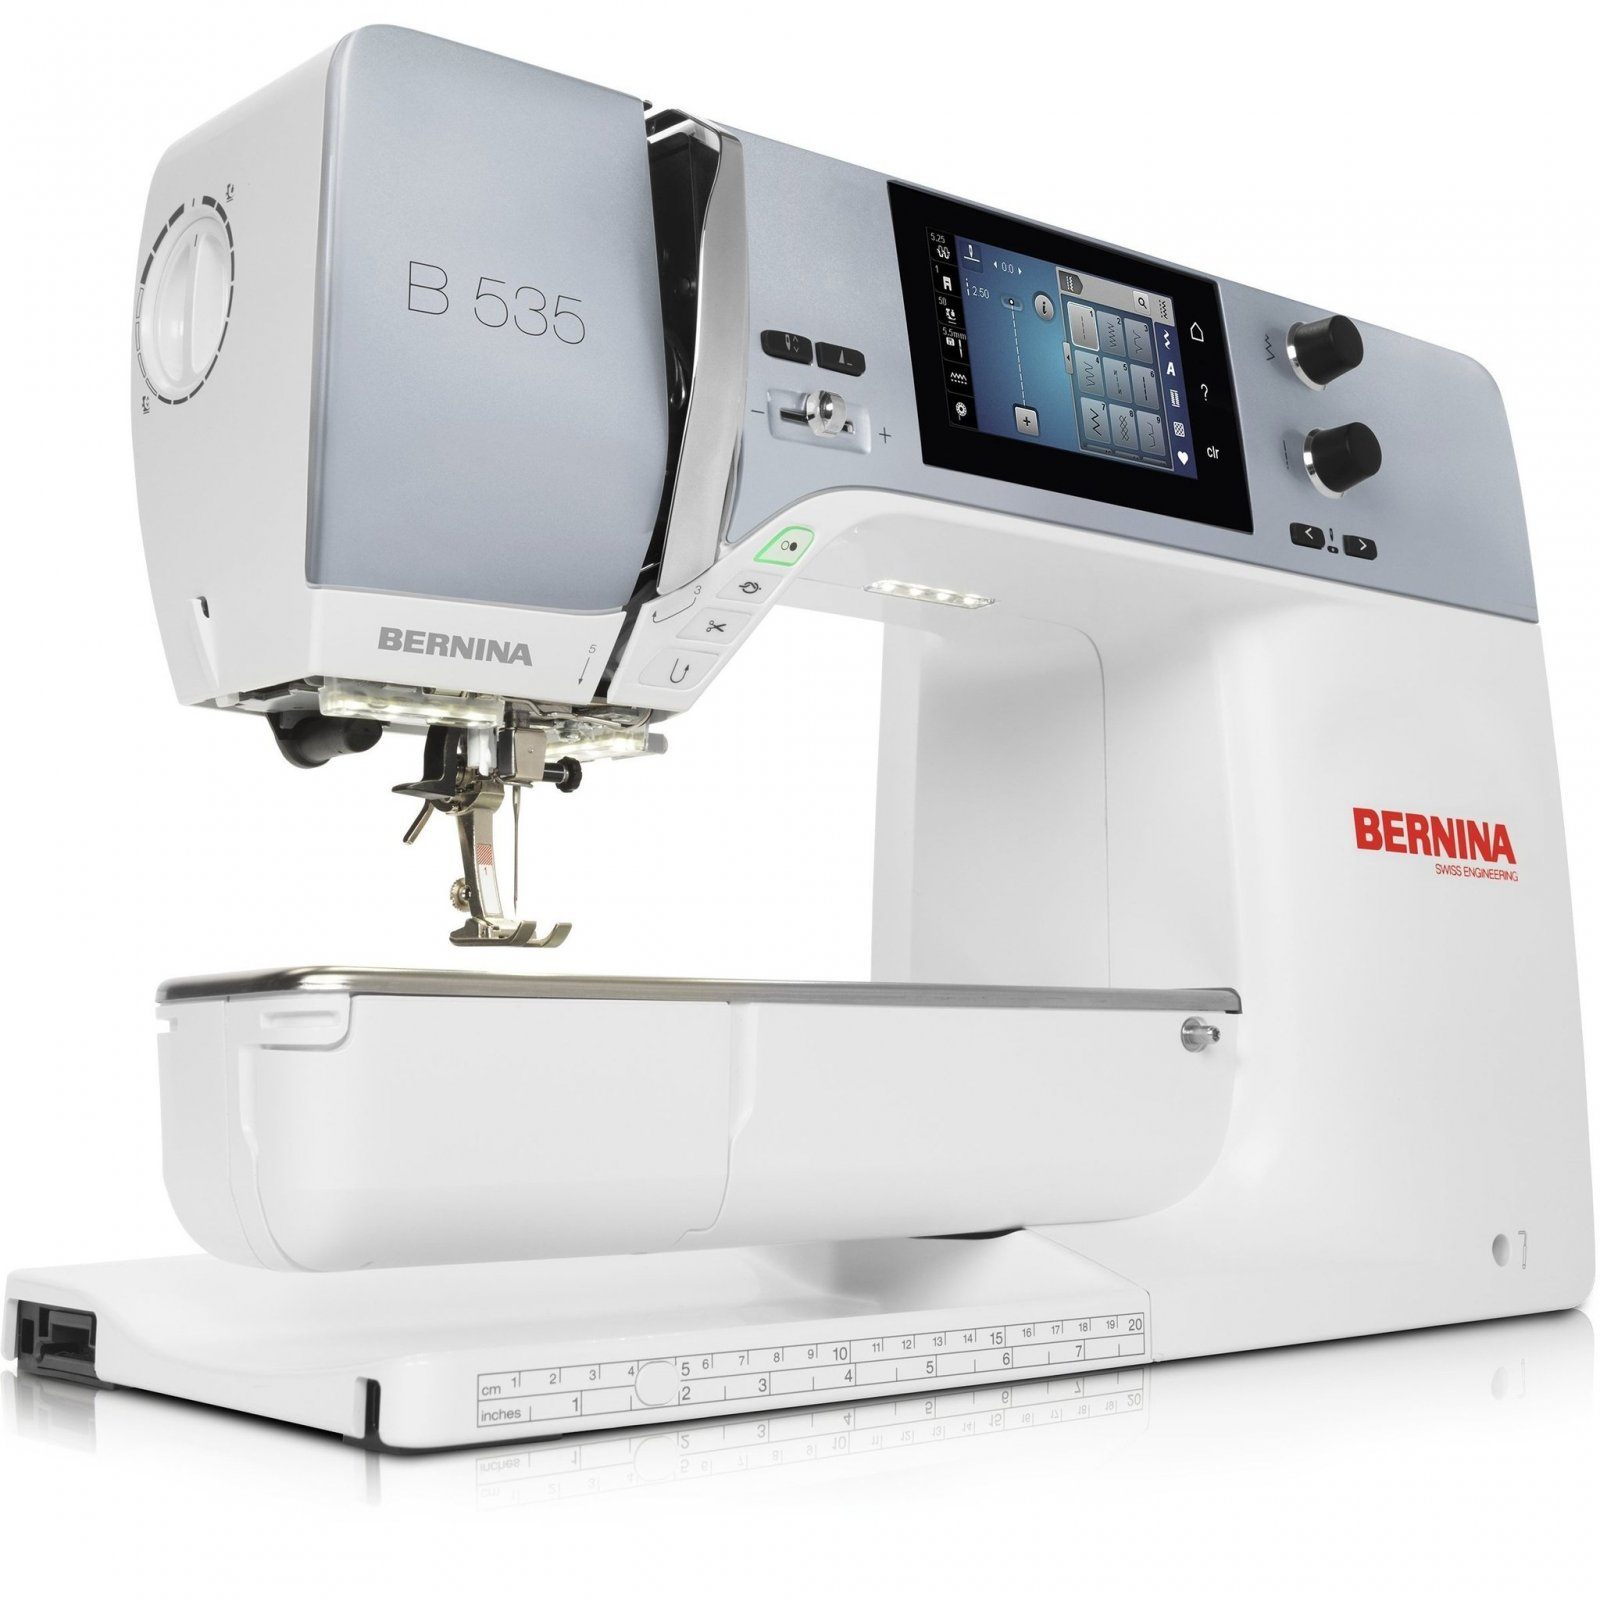 BERNINA 535 (No Embroidery)